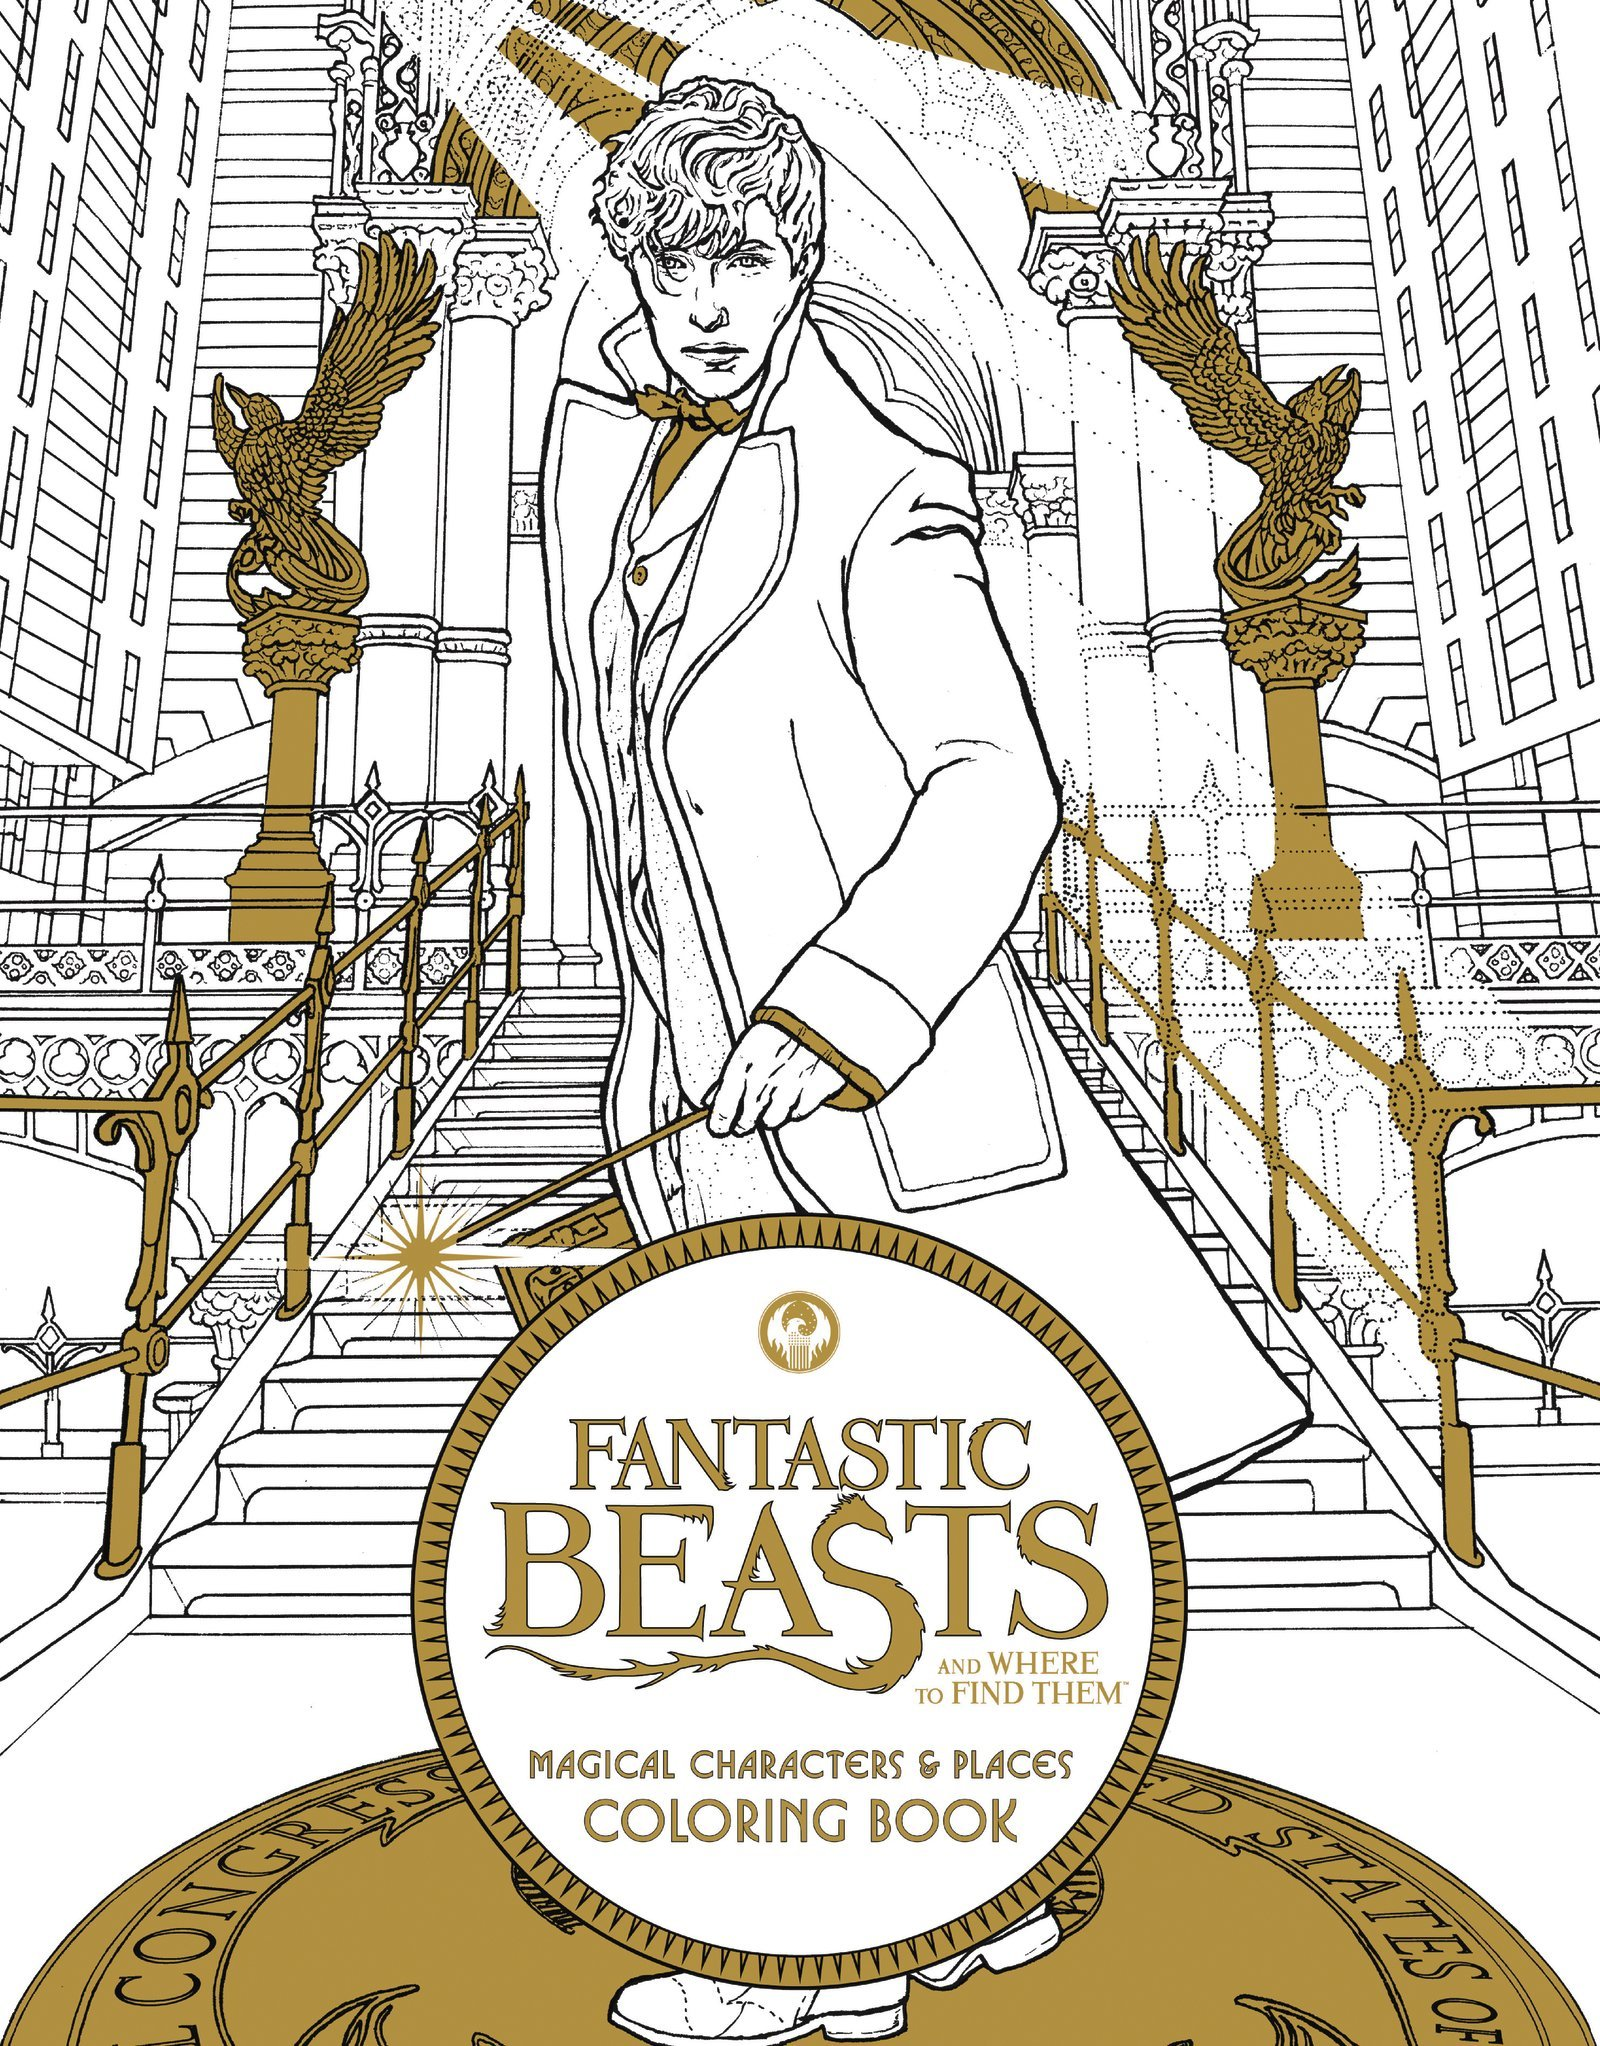 A fun magic coloring book amazon - Fantastic Beasts And Where To Find Them Magical Characters And Places Coloring Book Harpercollins Publishers 9780062571359 Amazon Com Books